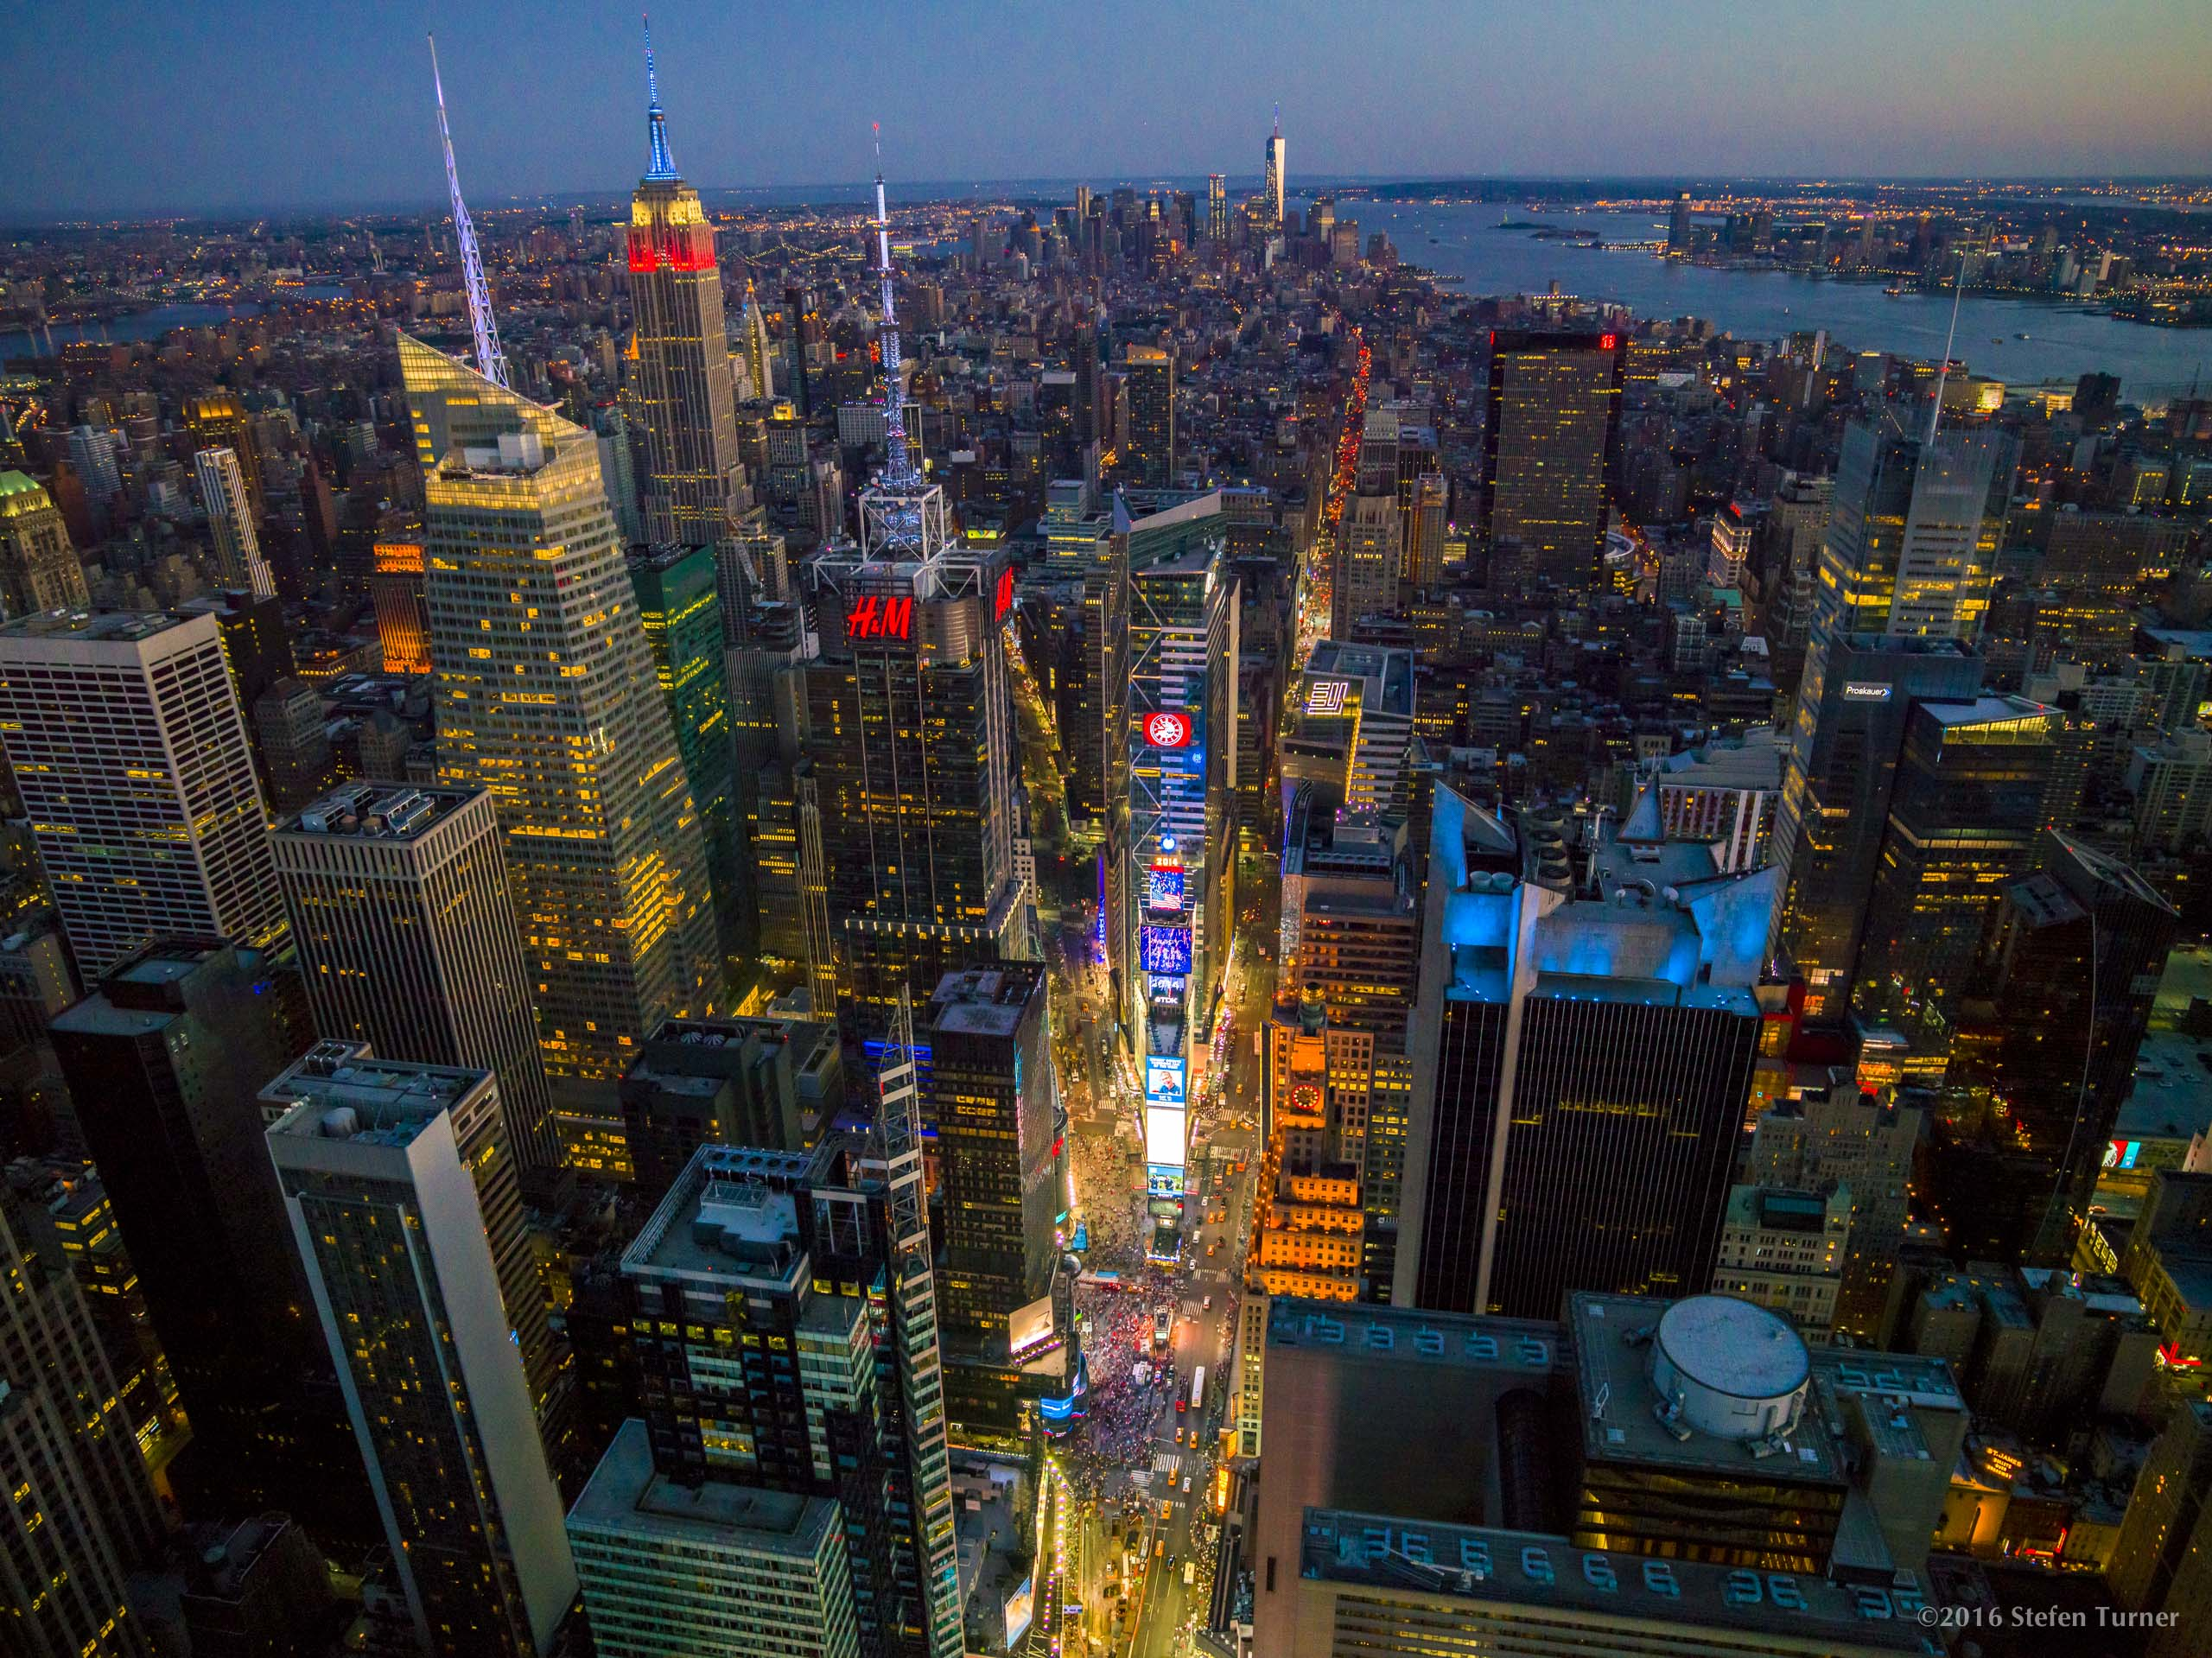 NY Aerial PhotographerB0002672